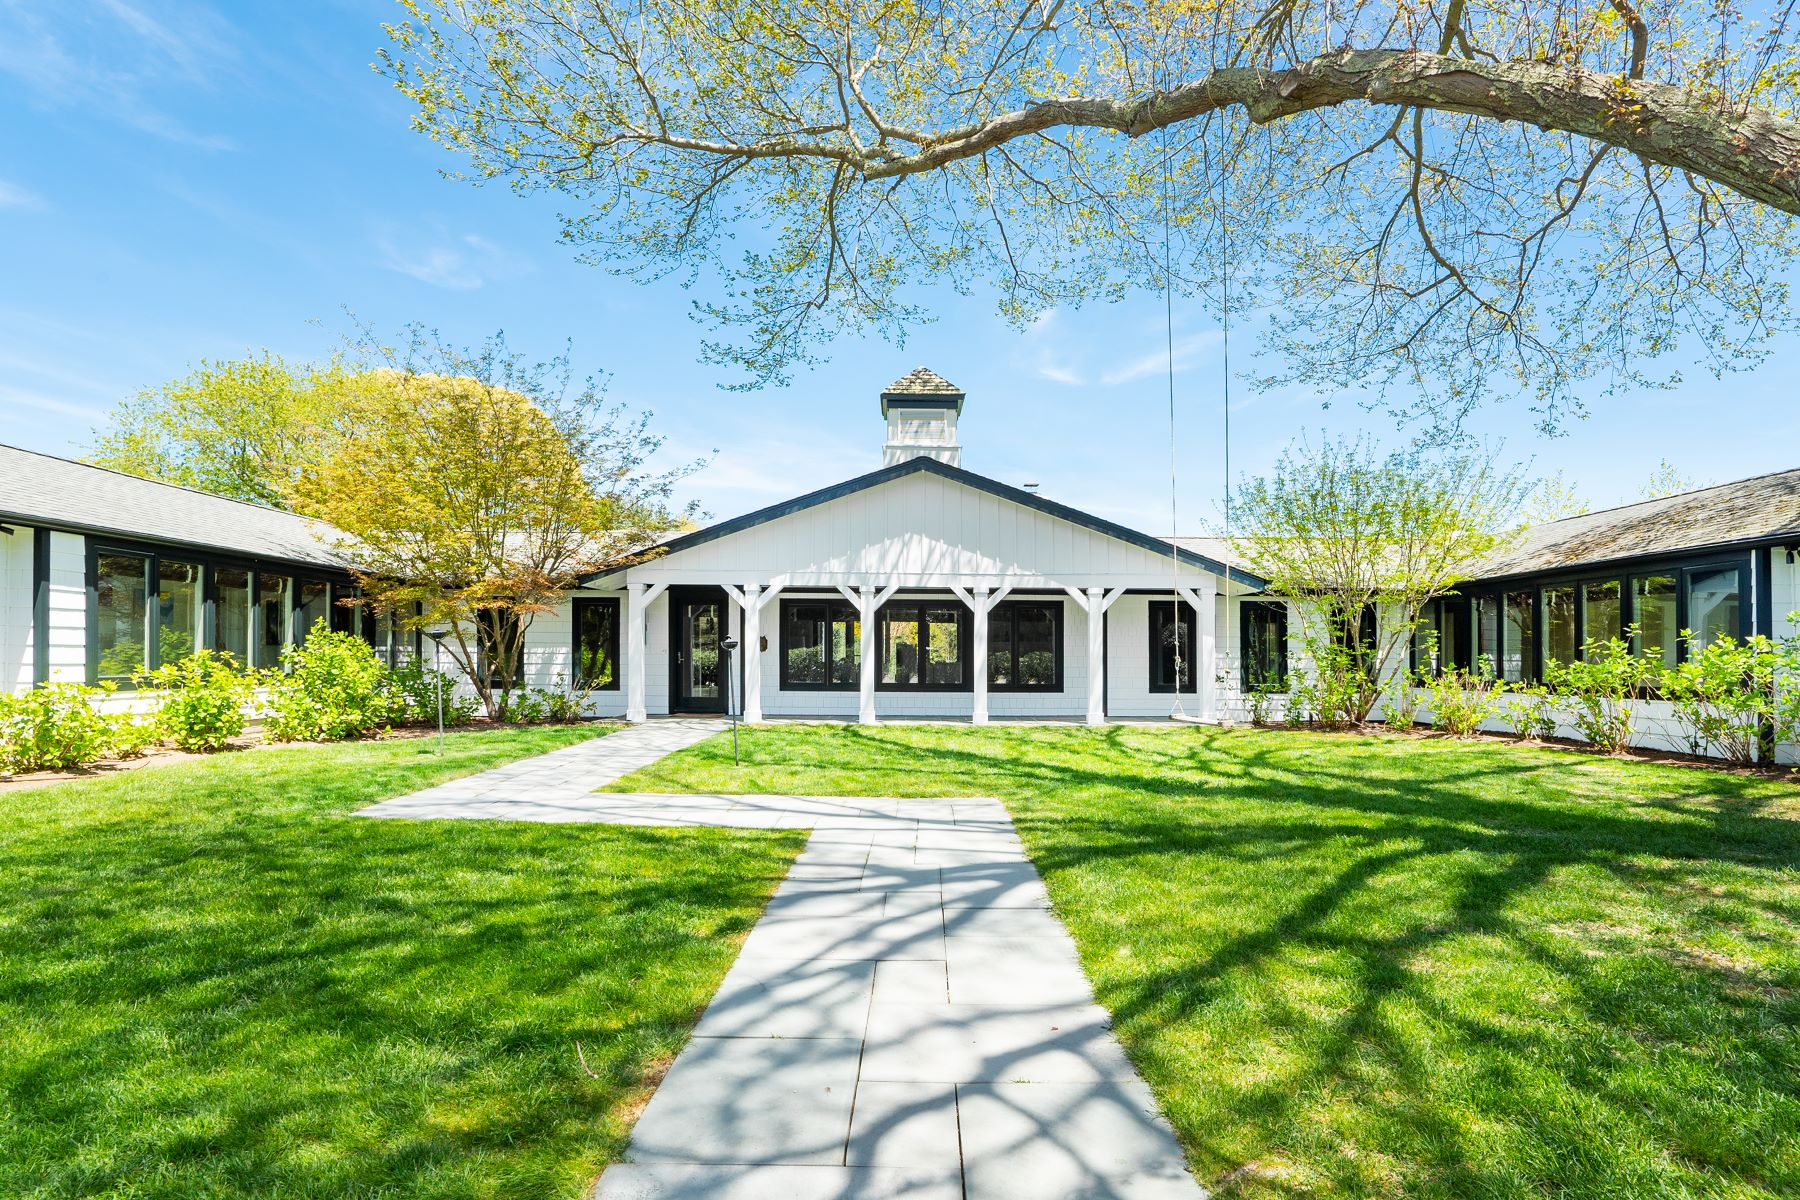 Single Family Homes for Sale at CHIC CARRIAGE HOUSE NEAR VILLAGE 174 Cedar Street East Hampton, New York 11937 United States